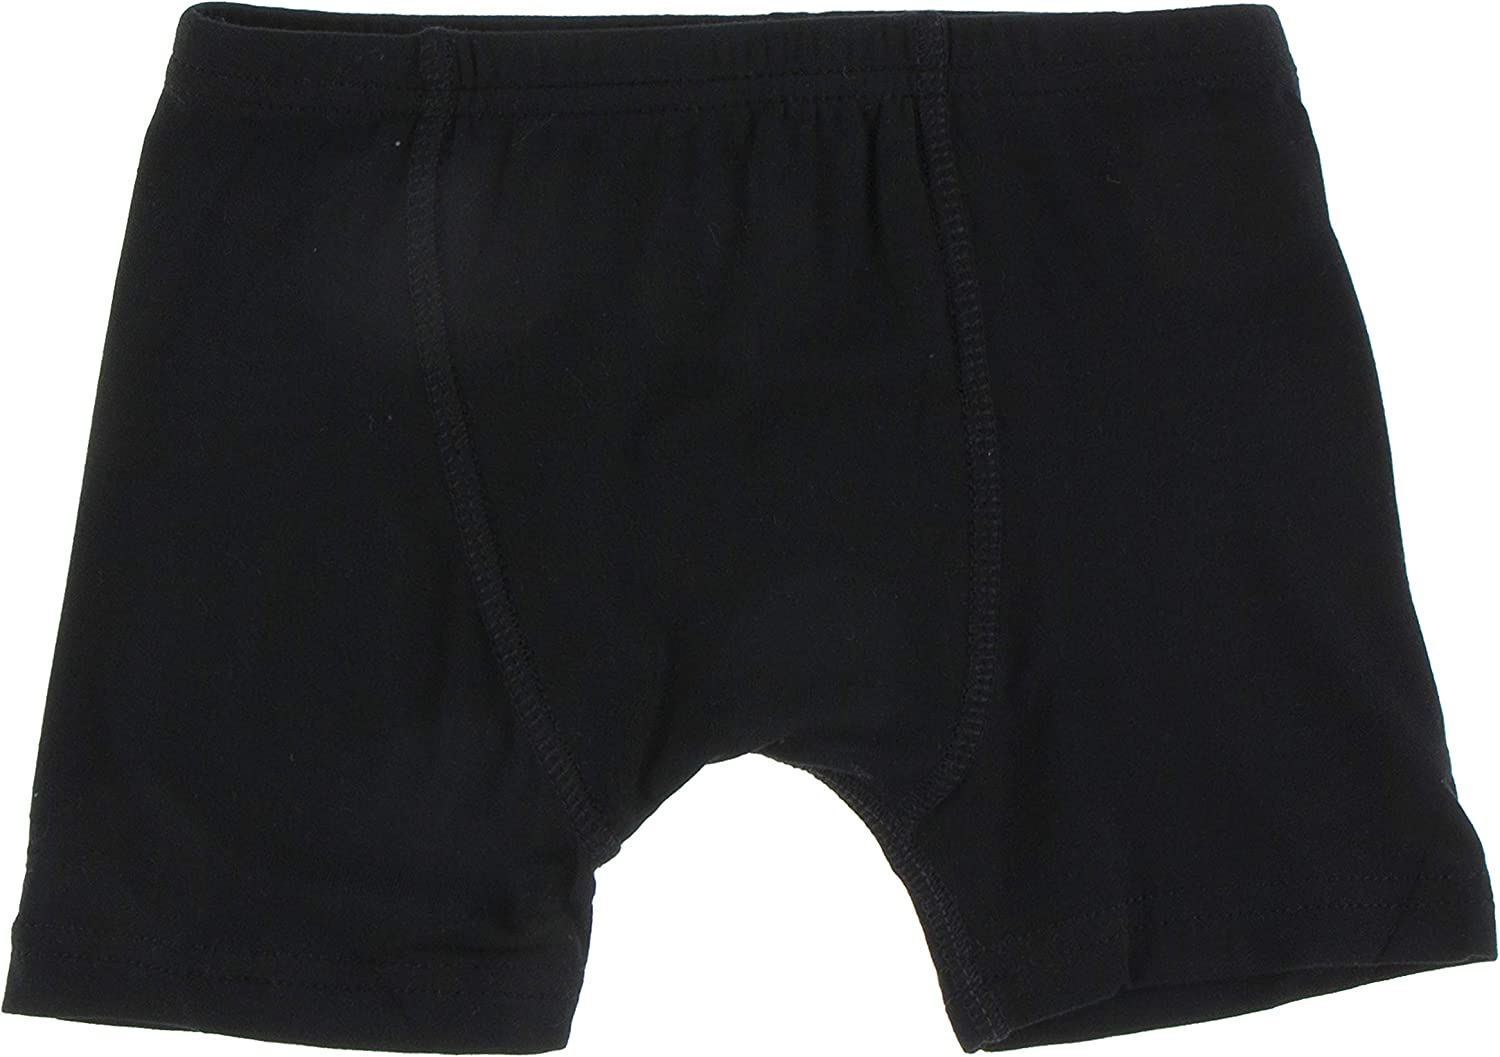 KicKee Pants Boys Boxer Briefs, Solid Color, Super Soft for All Day Comfort, Toddler to Big Kid Underwear